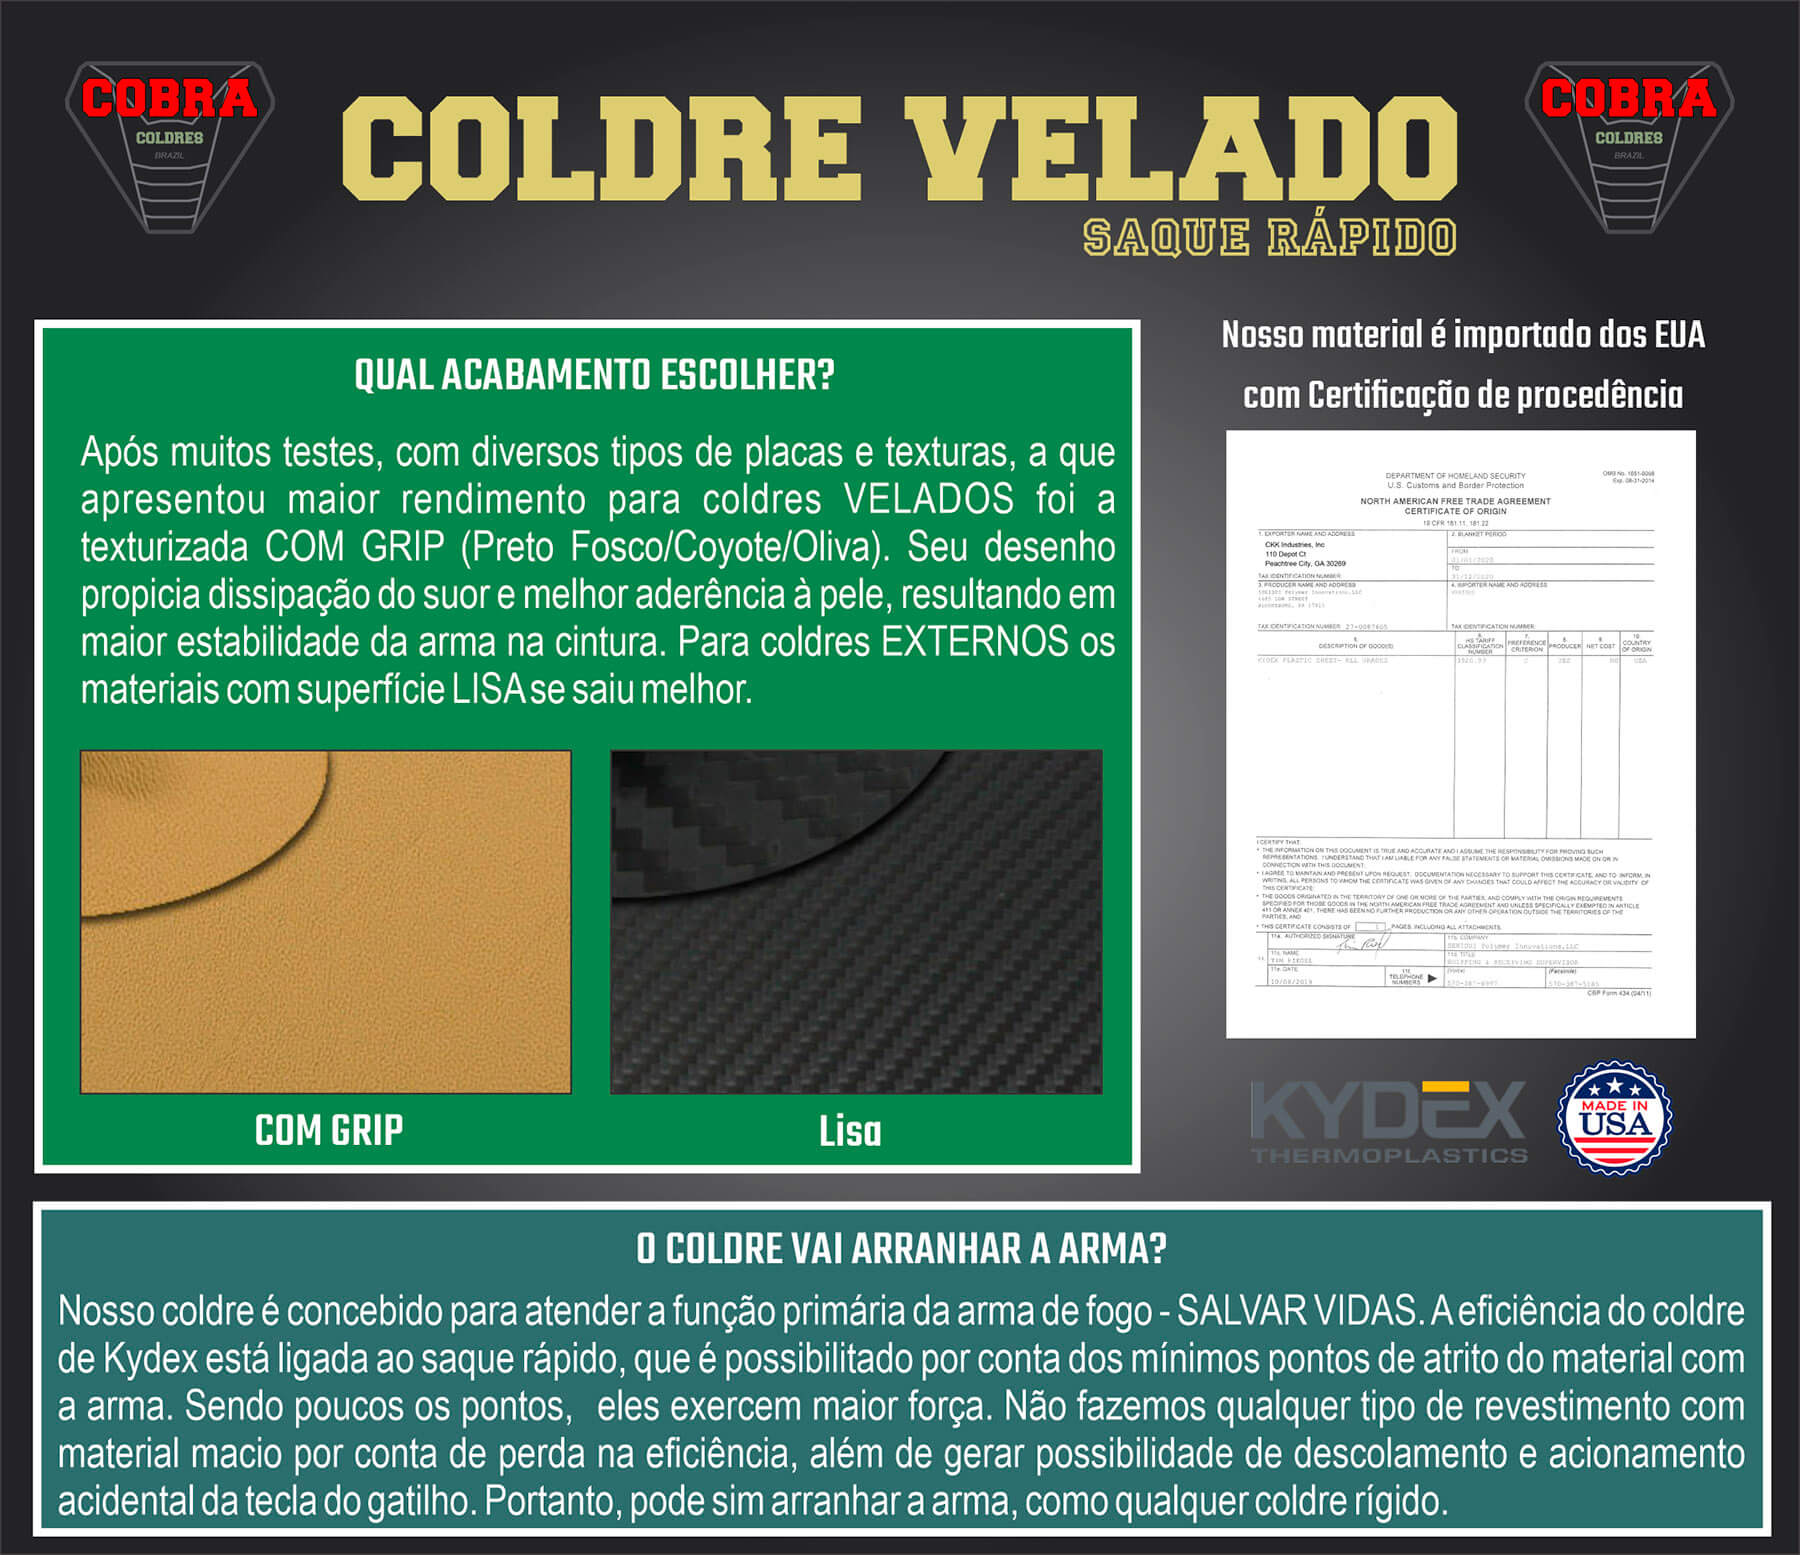 Coldre [1911 Officer] Kydex® 080 - Saque Rápido Velado